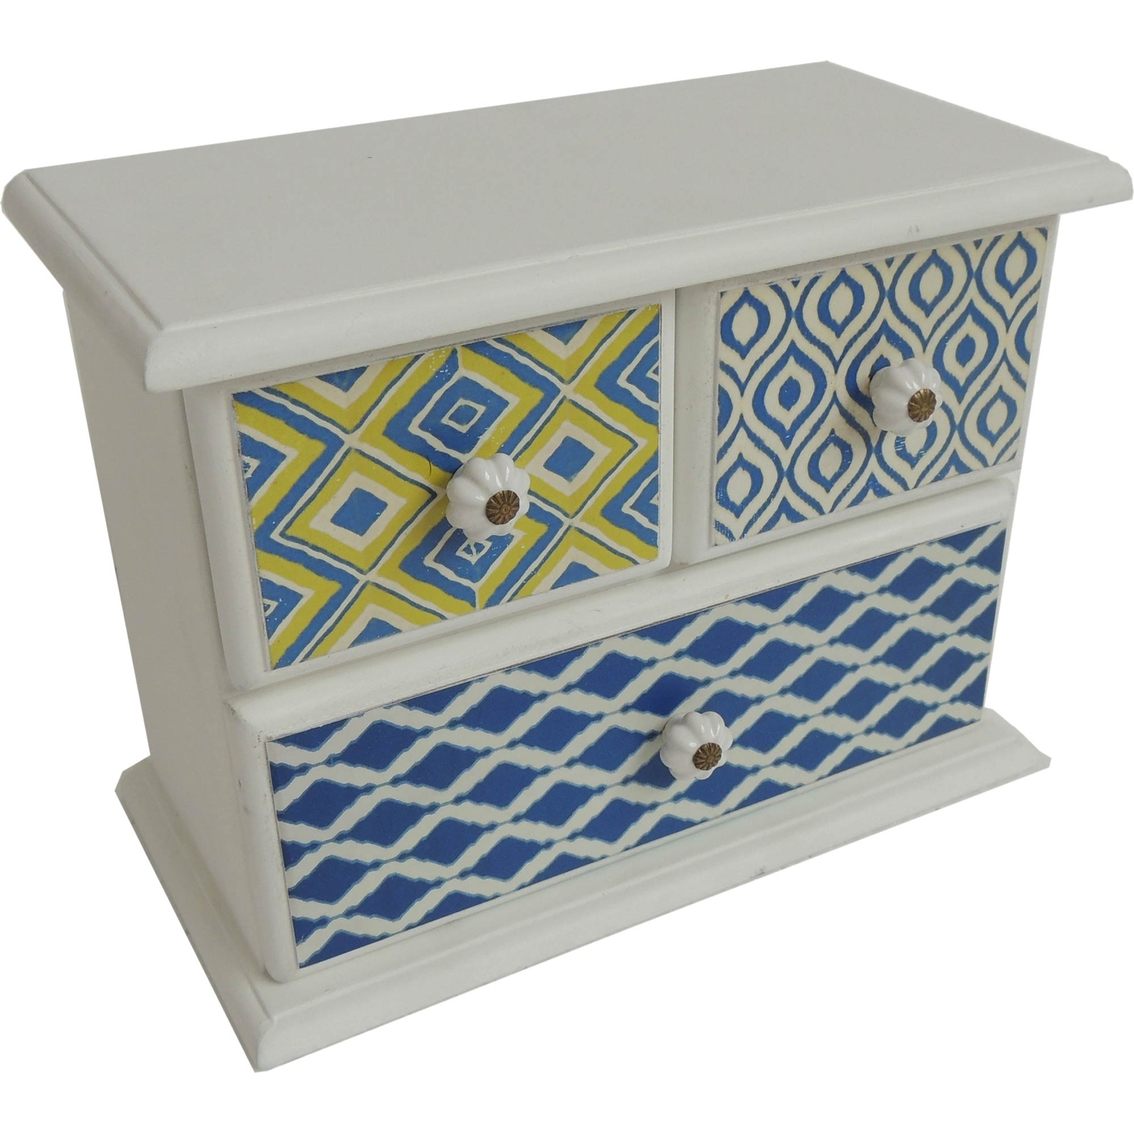 Decorative Boxes Storage: Music & Keepsake Boxes